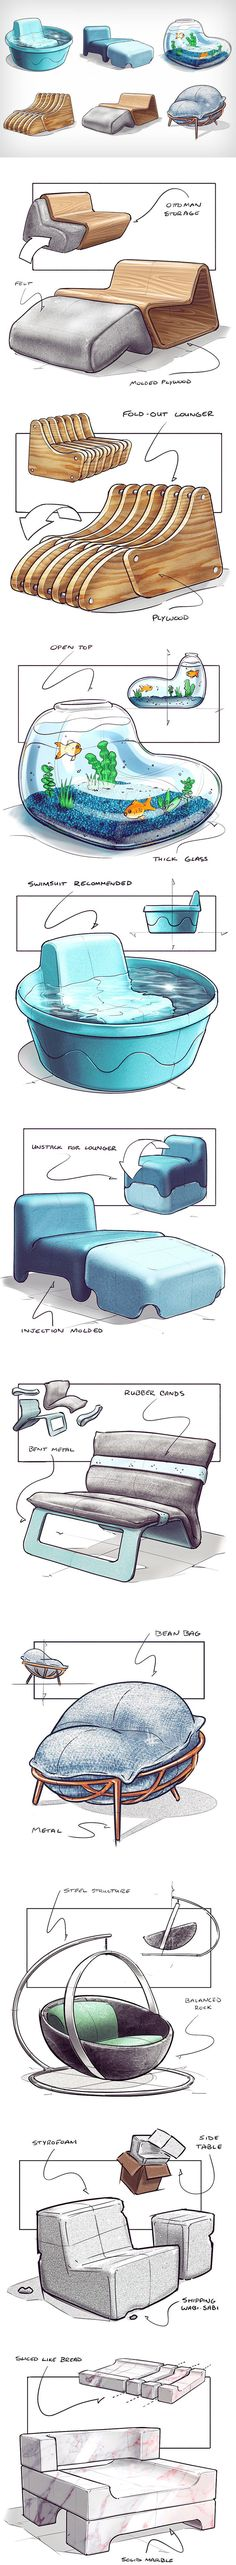 Given the hashtag of Baker uploads unusual conceptual chair designs almost every week. The chairs showcase inventiveness that one rarely sees in furniture design, as concepts take inspiration from quite literally anywhere. Scroll down Furniture Layout, New Furniture, Furniture Design, Trendy Furniture, Bungalow Haus Design, House Design, Deco Design, Design Art, Industrial Design Sketch